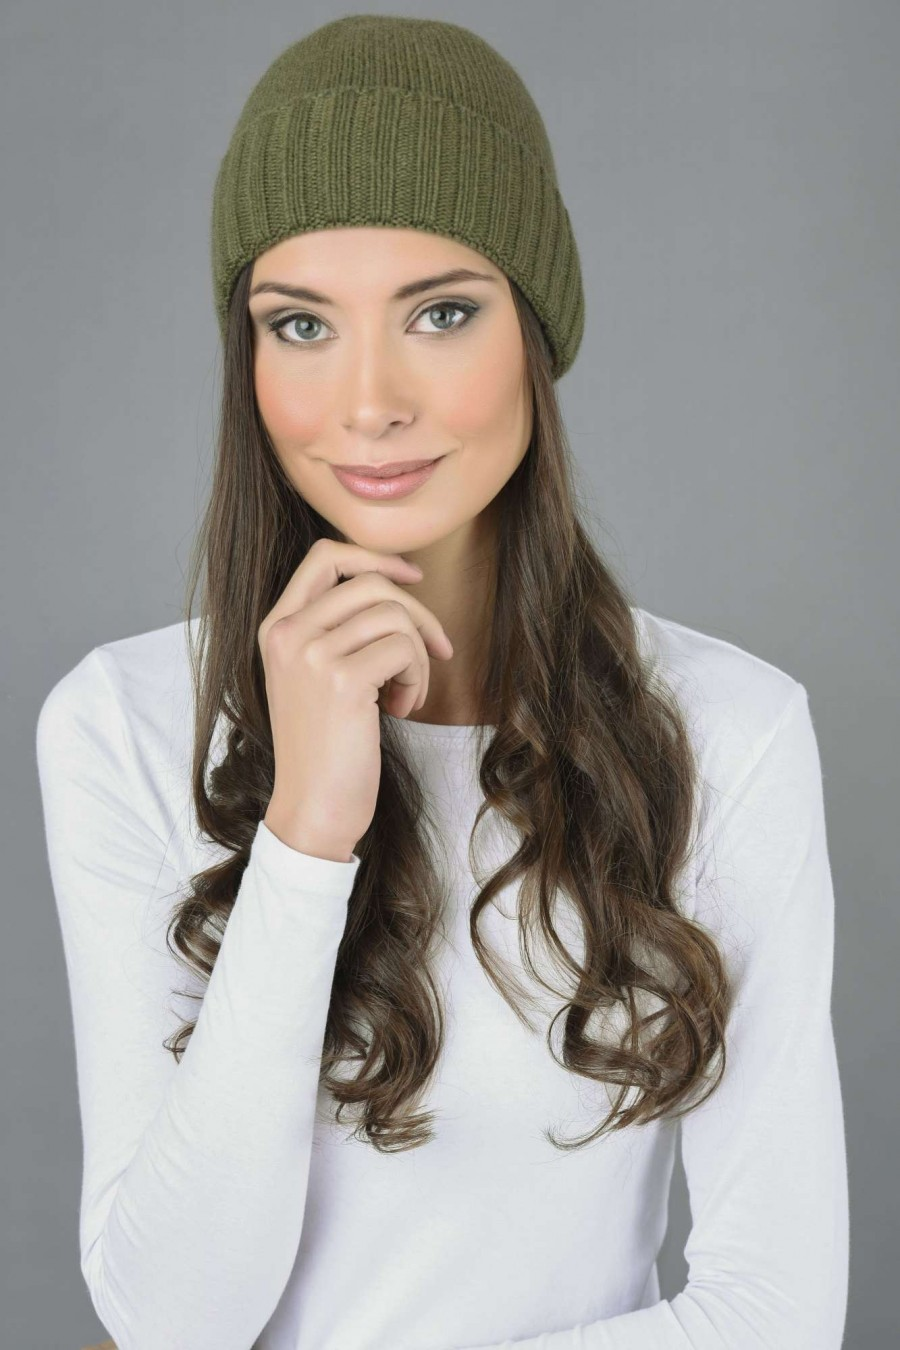 c44761d8908 Pure Cashmere Plain and Ribbed Knitted Beanie Hat in Loden Green ...